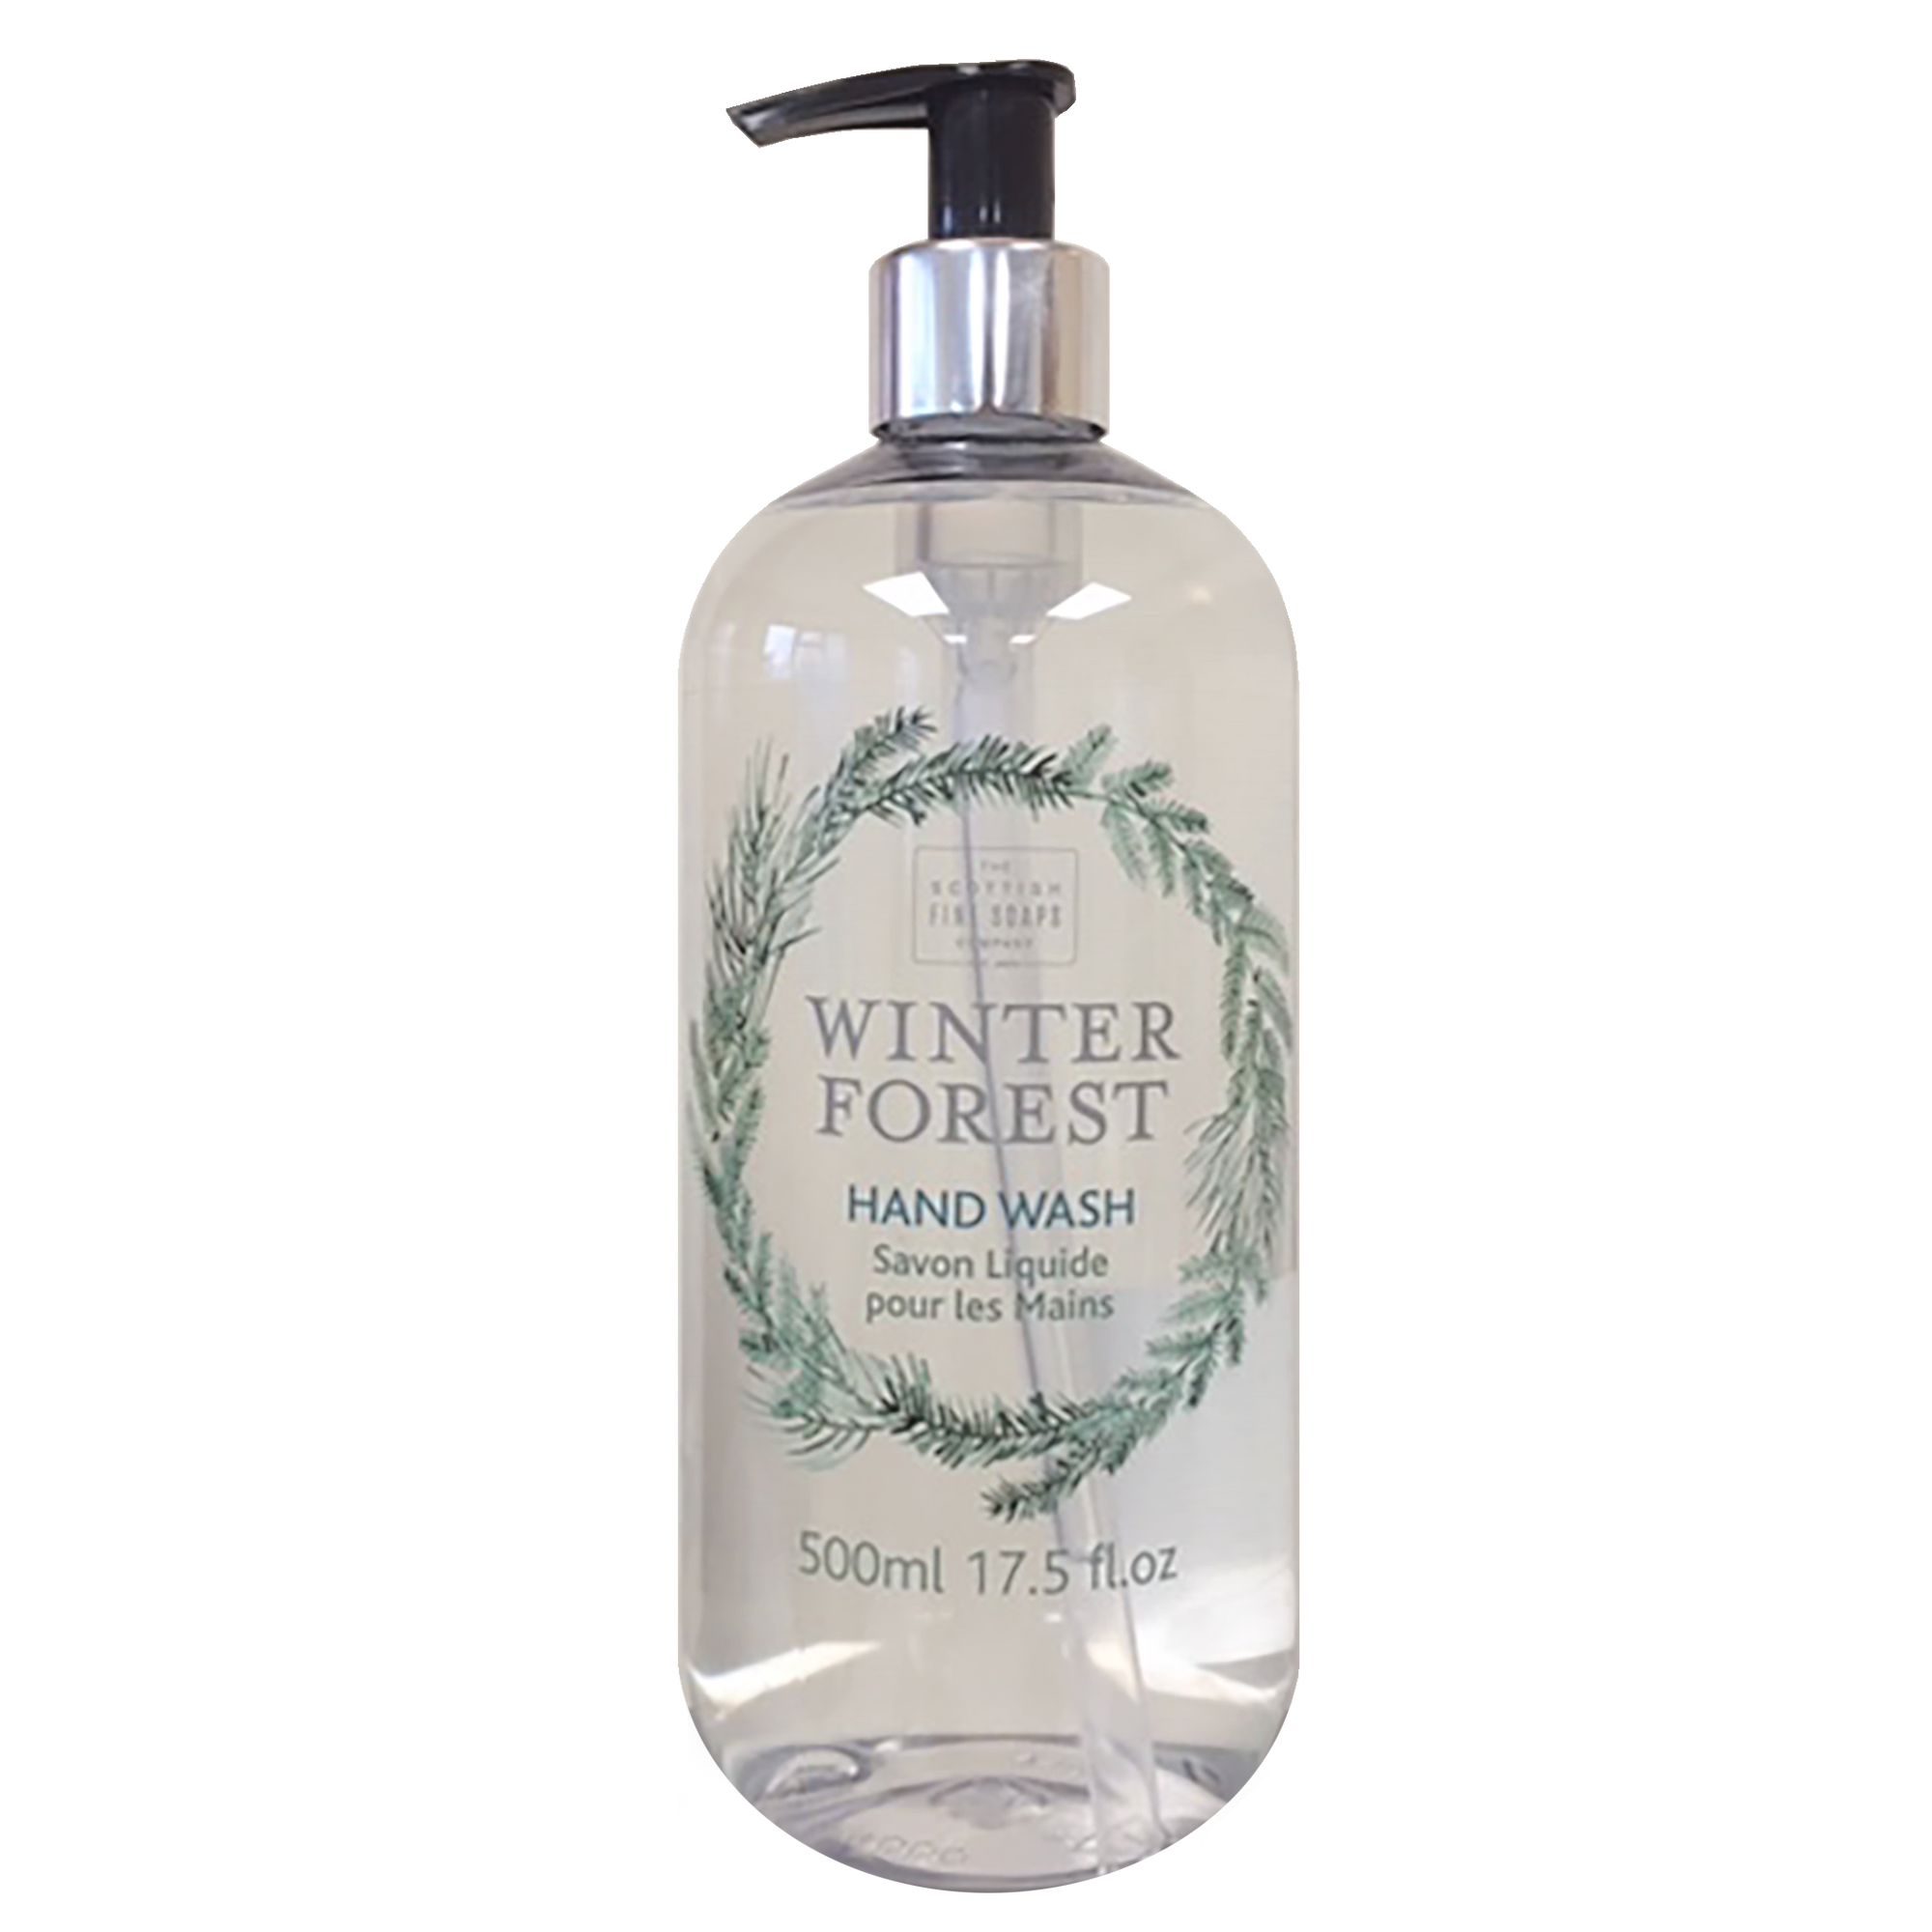 Winter Forest Hand Wash